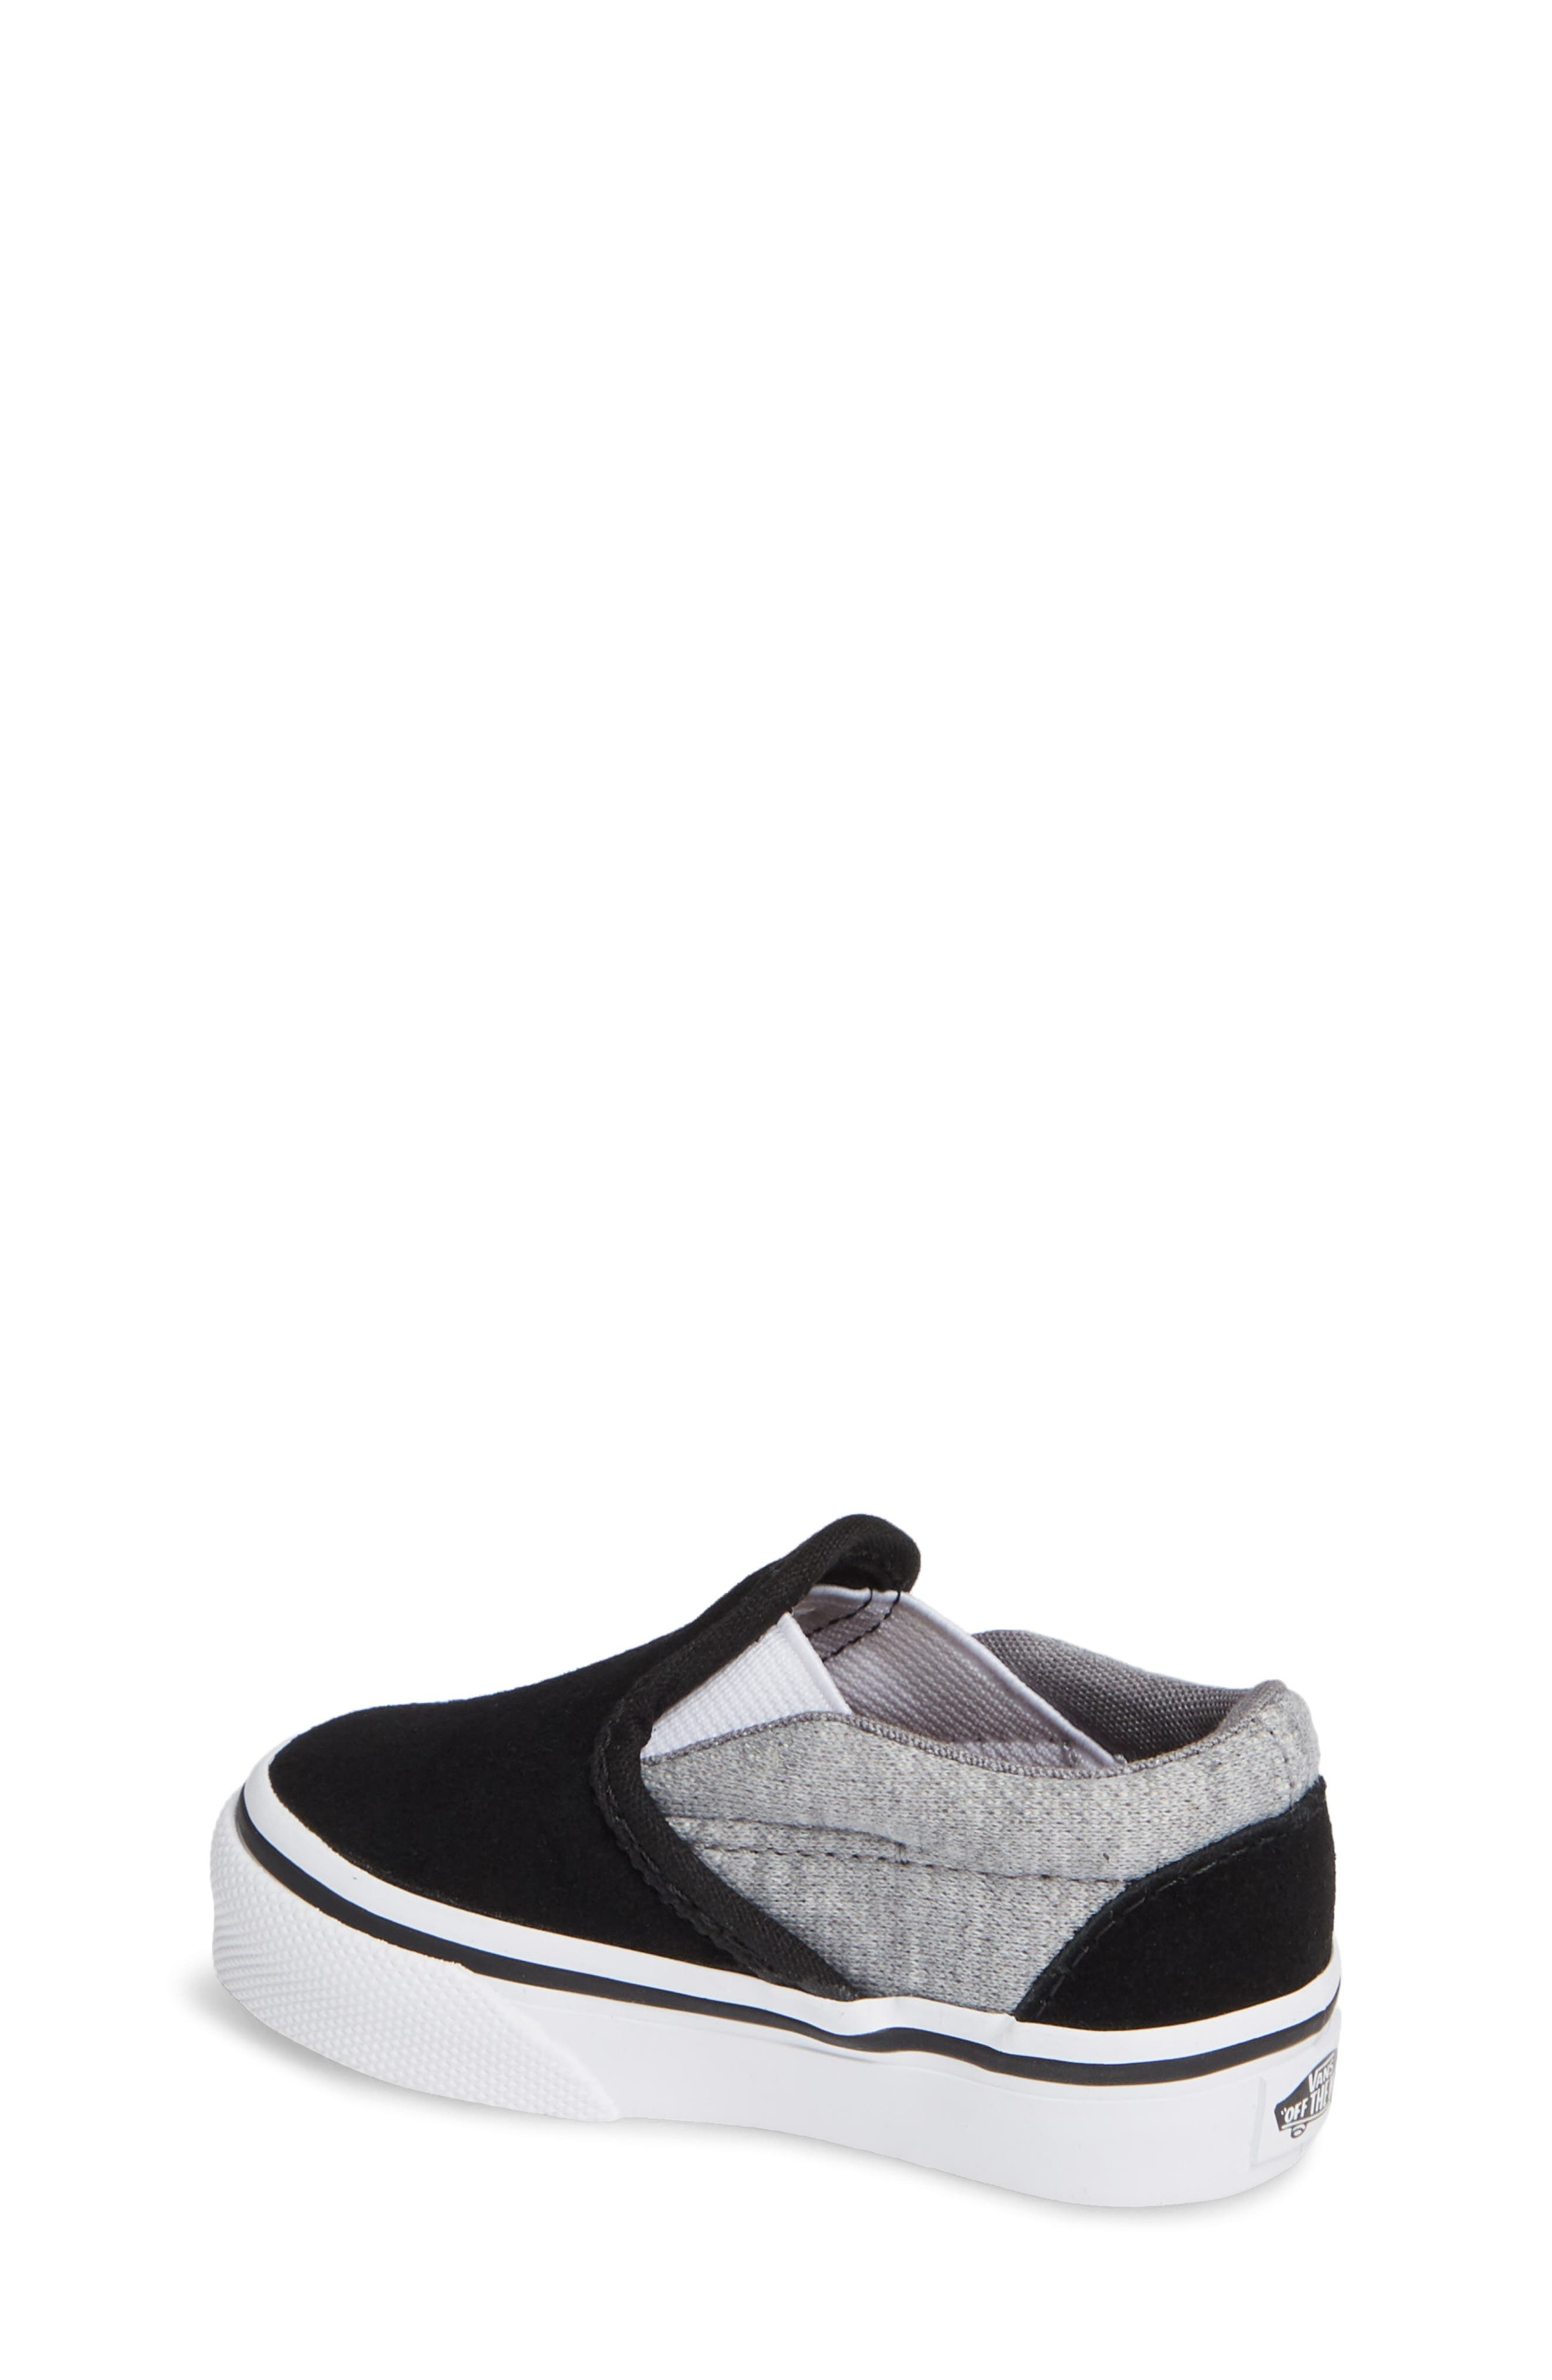 'Classic' Slip-On,                             Alternate thumbnail 2, color,                             SUEDE AND JERSEY GRAY/ BLACK